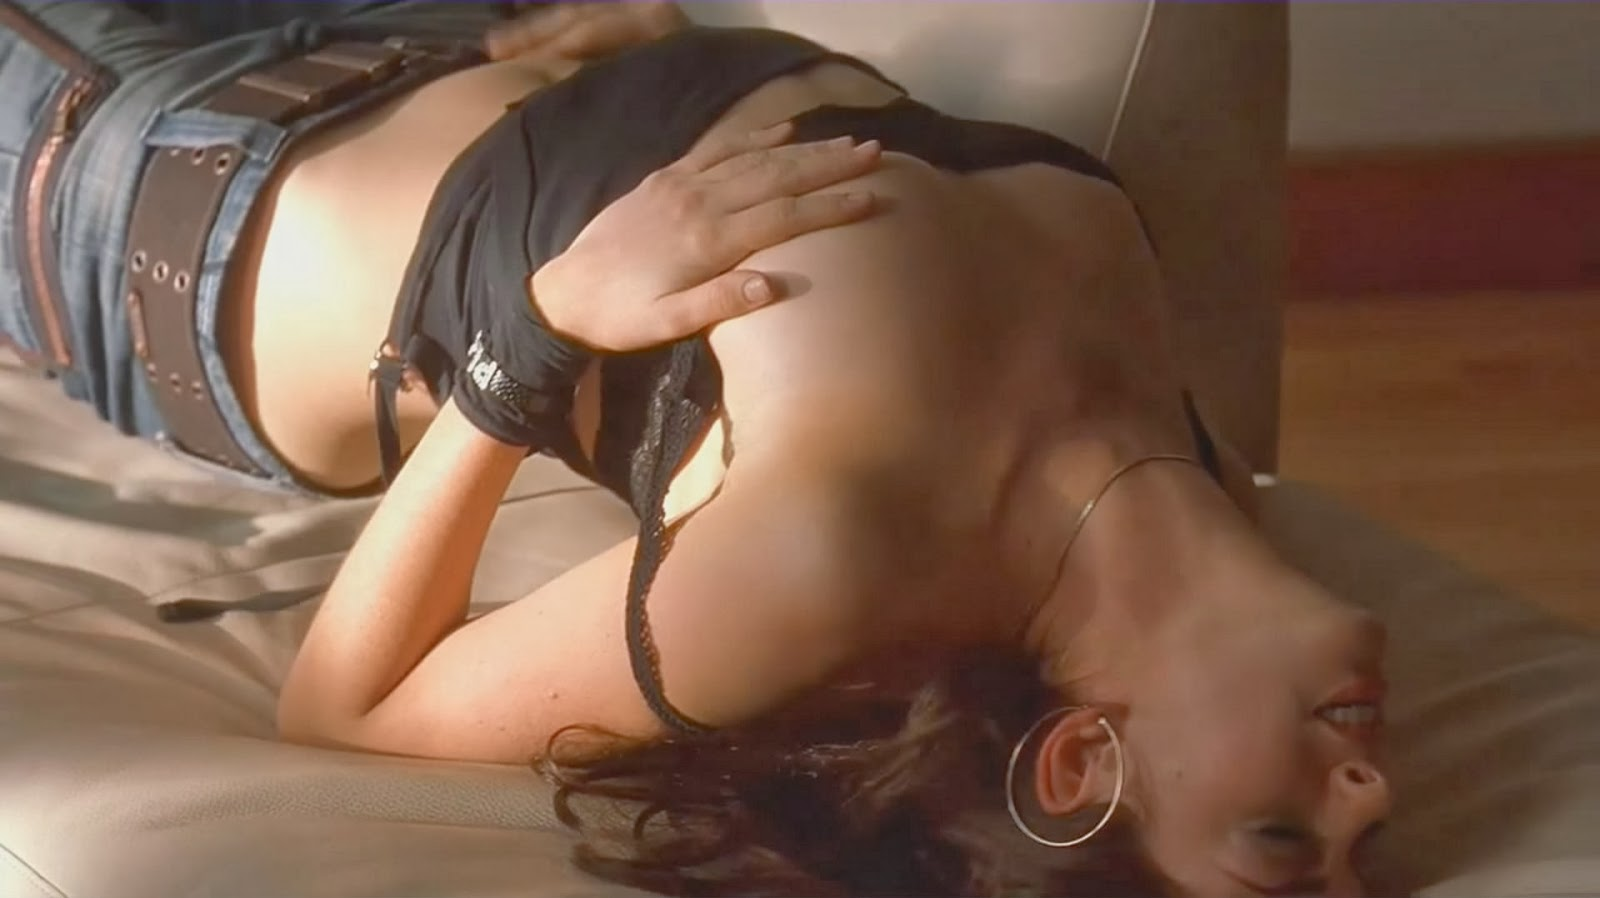 anal milfs from the naked lady ass